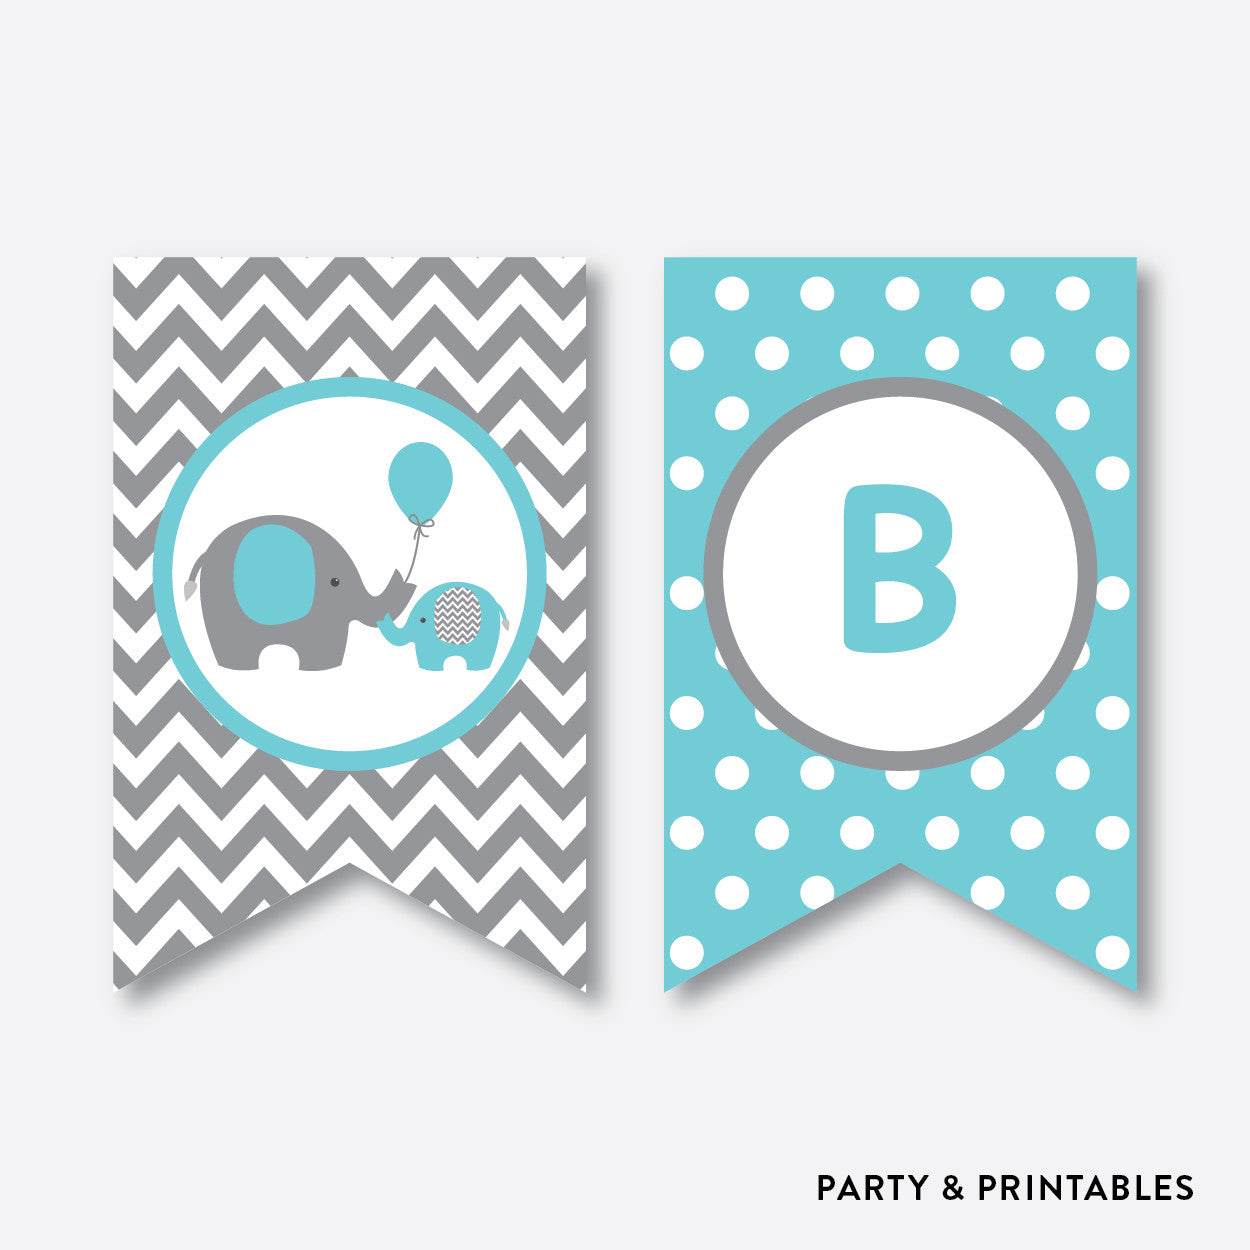 Baby Shower Custom Banners: Elephant Party Banner / Baby Shower Banner / Non